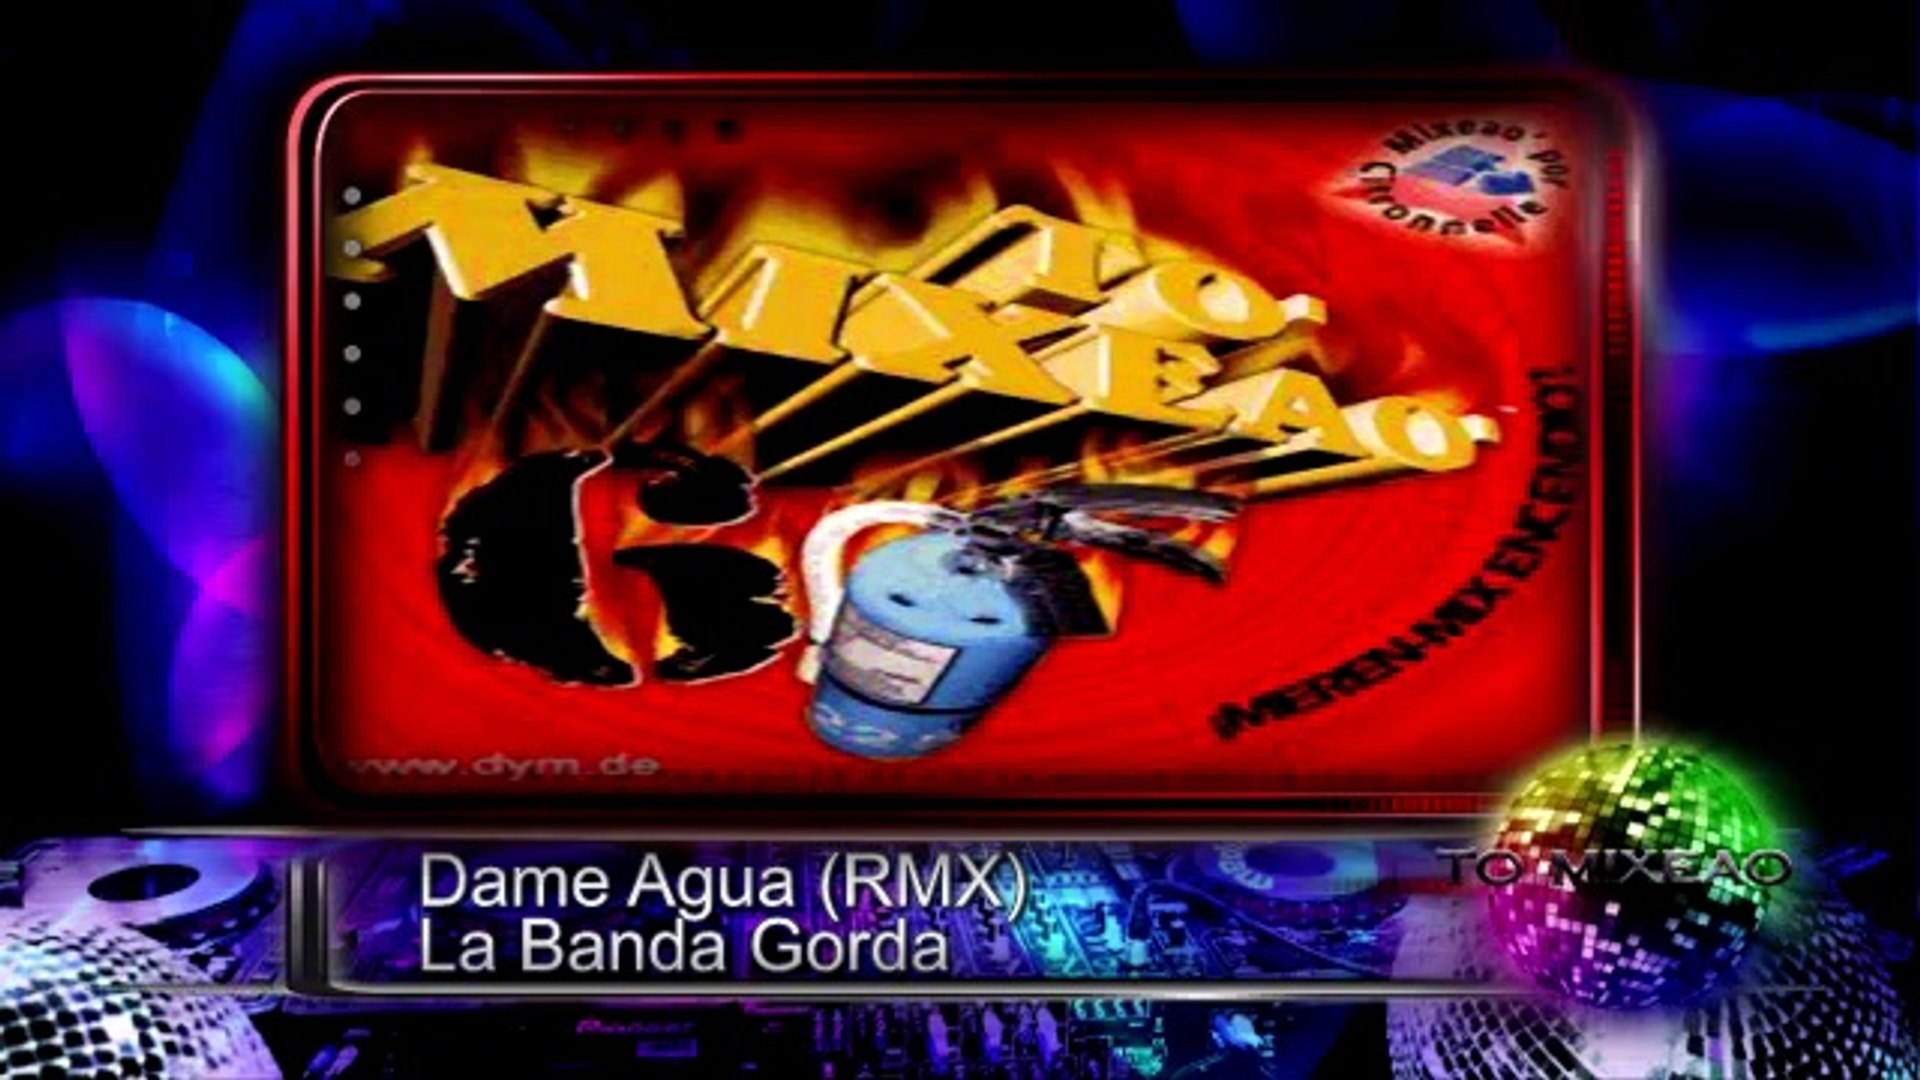 Dame Agua (Remix) - La Banda Gorda ♫♫ To' Mixeao 6 ♫